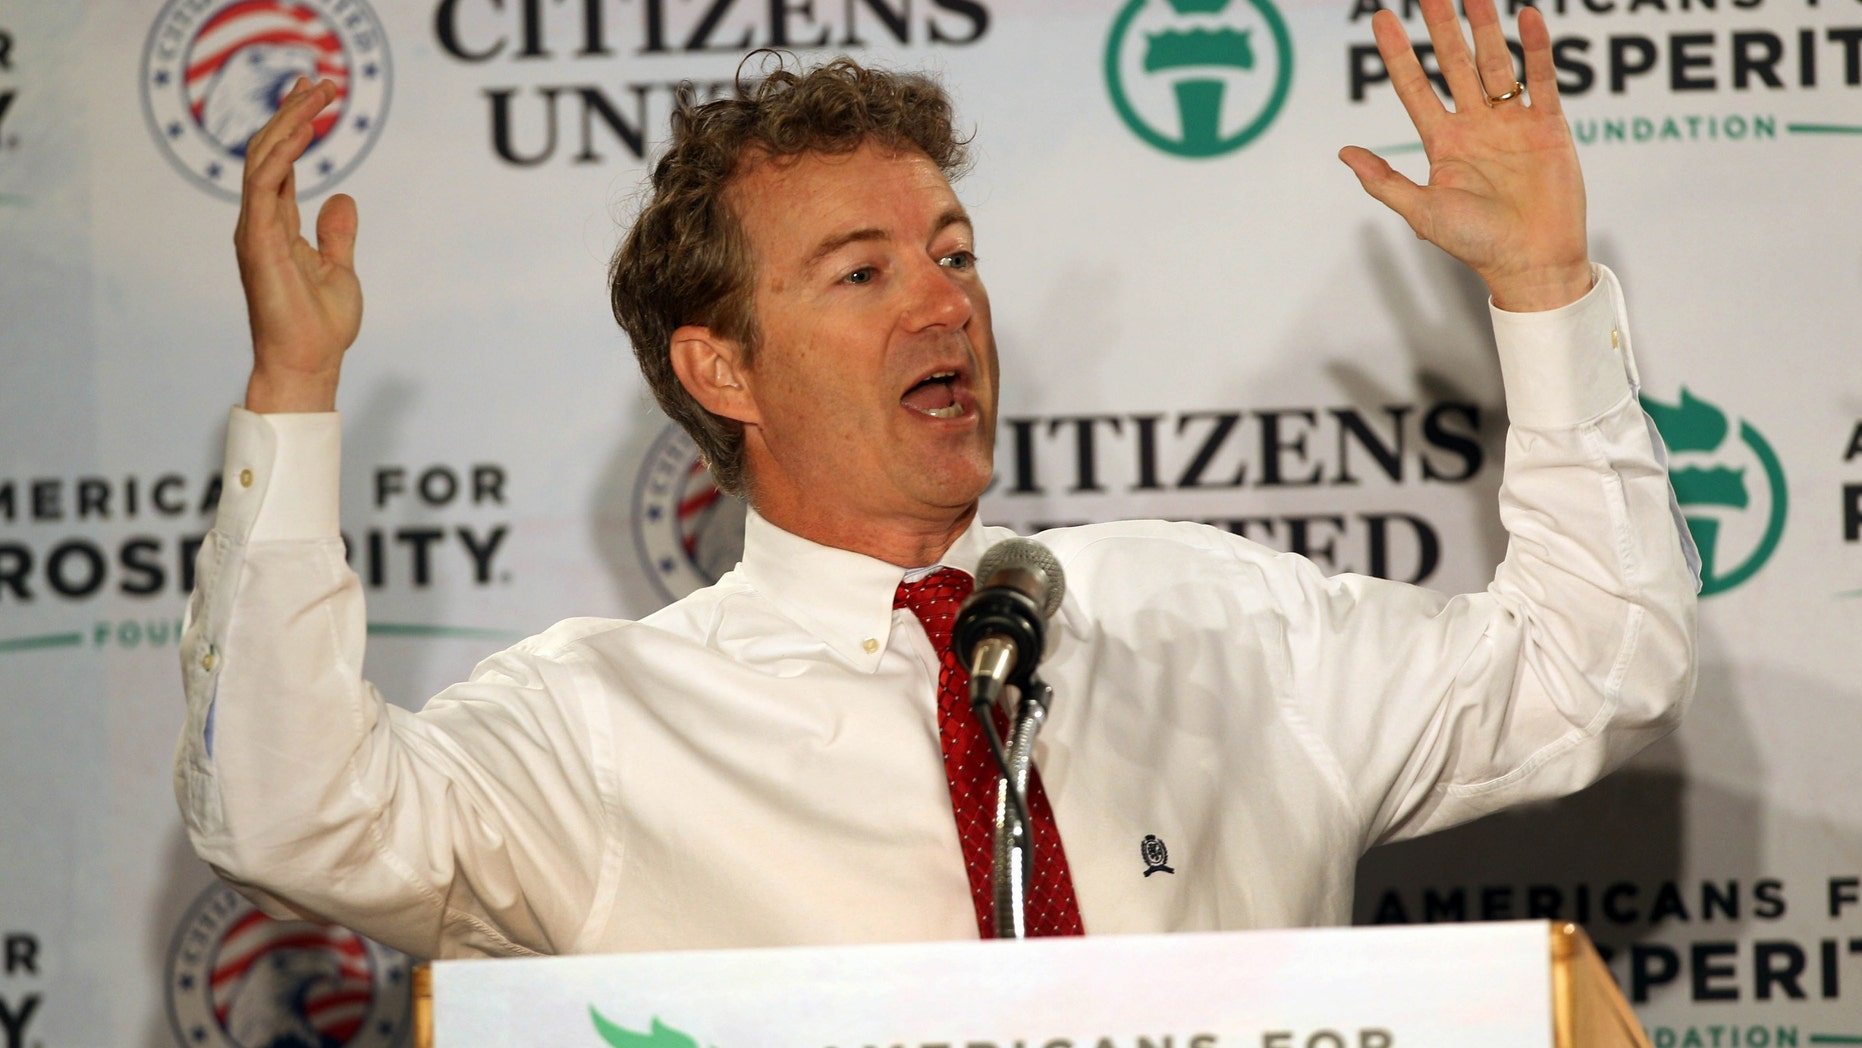 Sen. Rand Paul, R-Ky. speaks at a GOP Freedom Summit, Saturday, April 12, 2014, in Manchester, N.H.  Several potential Republican White House contenders _ among them Kentucky Sen. Rand Paul, Sen. Ted Cruz, and former Arkansas Gov. Mike Huckabee _ headline a conference Saturday in New Hampshire, hosted by the conservative groups Citizens United and Americans for Prosperity. (AP Photo/Jim Cole)